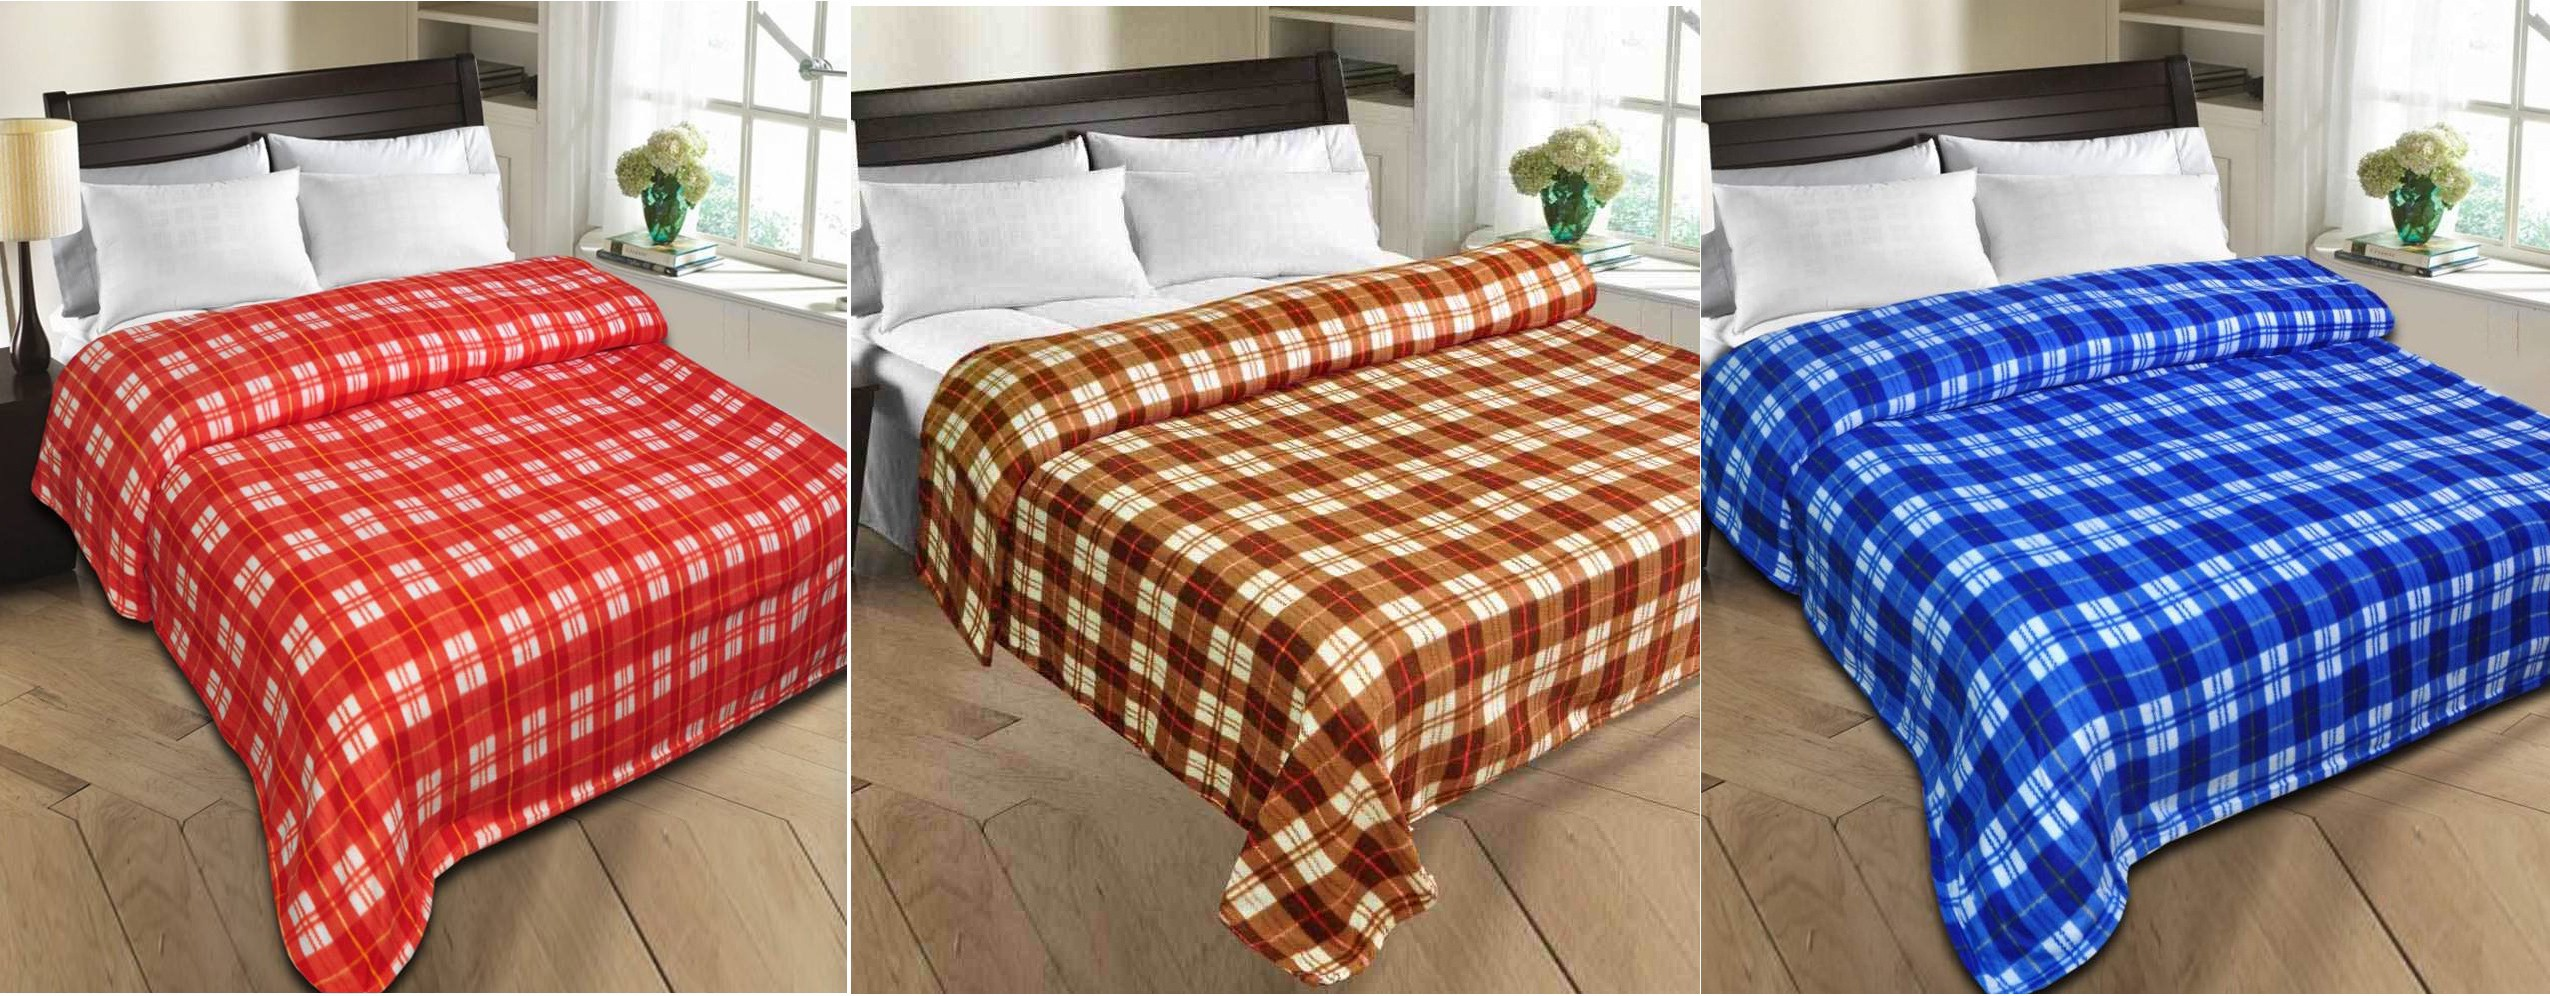 Styletex Checkered Single Blanket Red, Brown, Blue(Fleece Blanket, 1 Blue 1 Brown 1 Red Blankets)